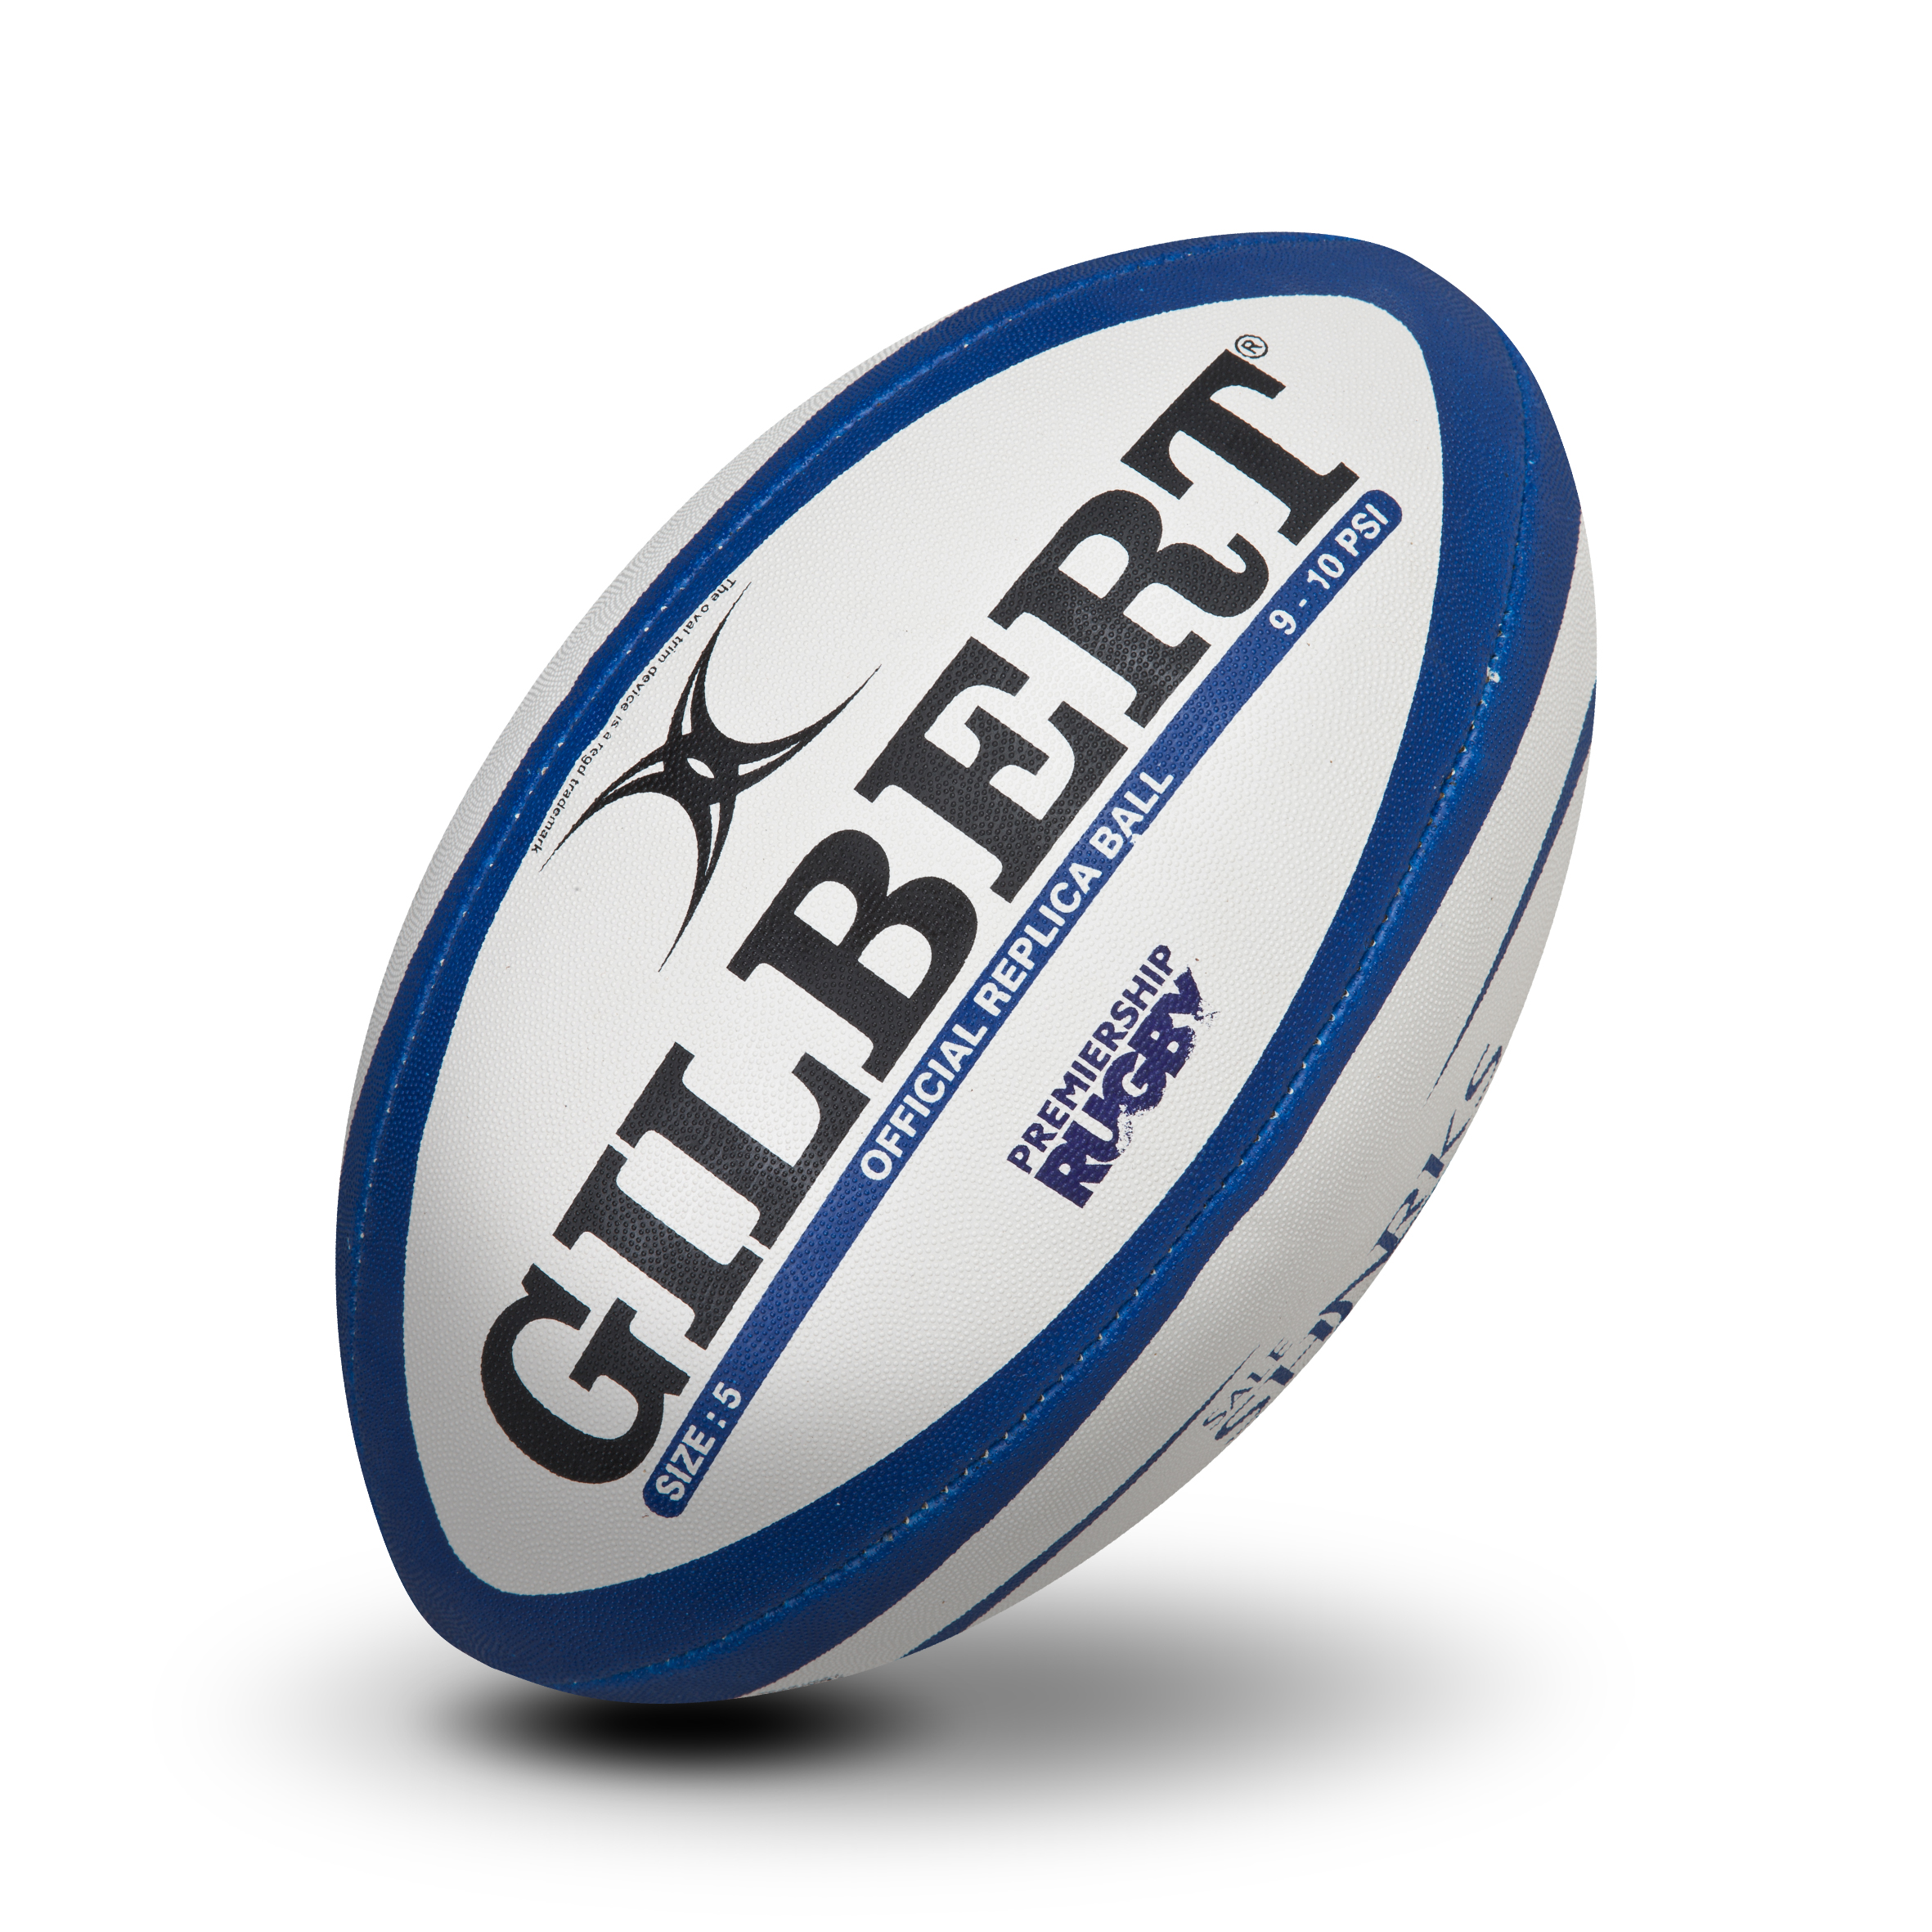 Gilbert Sale Sharks Replica Rugby Ball - Size 5 - White/Blue